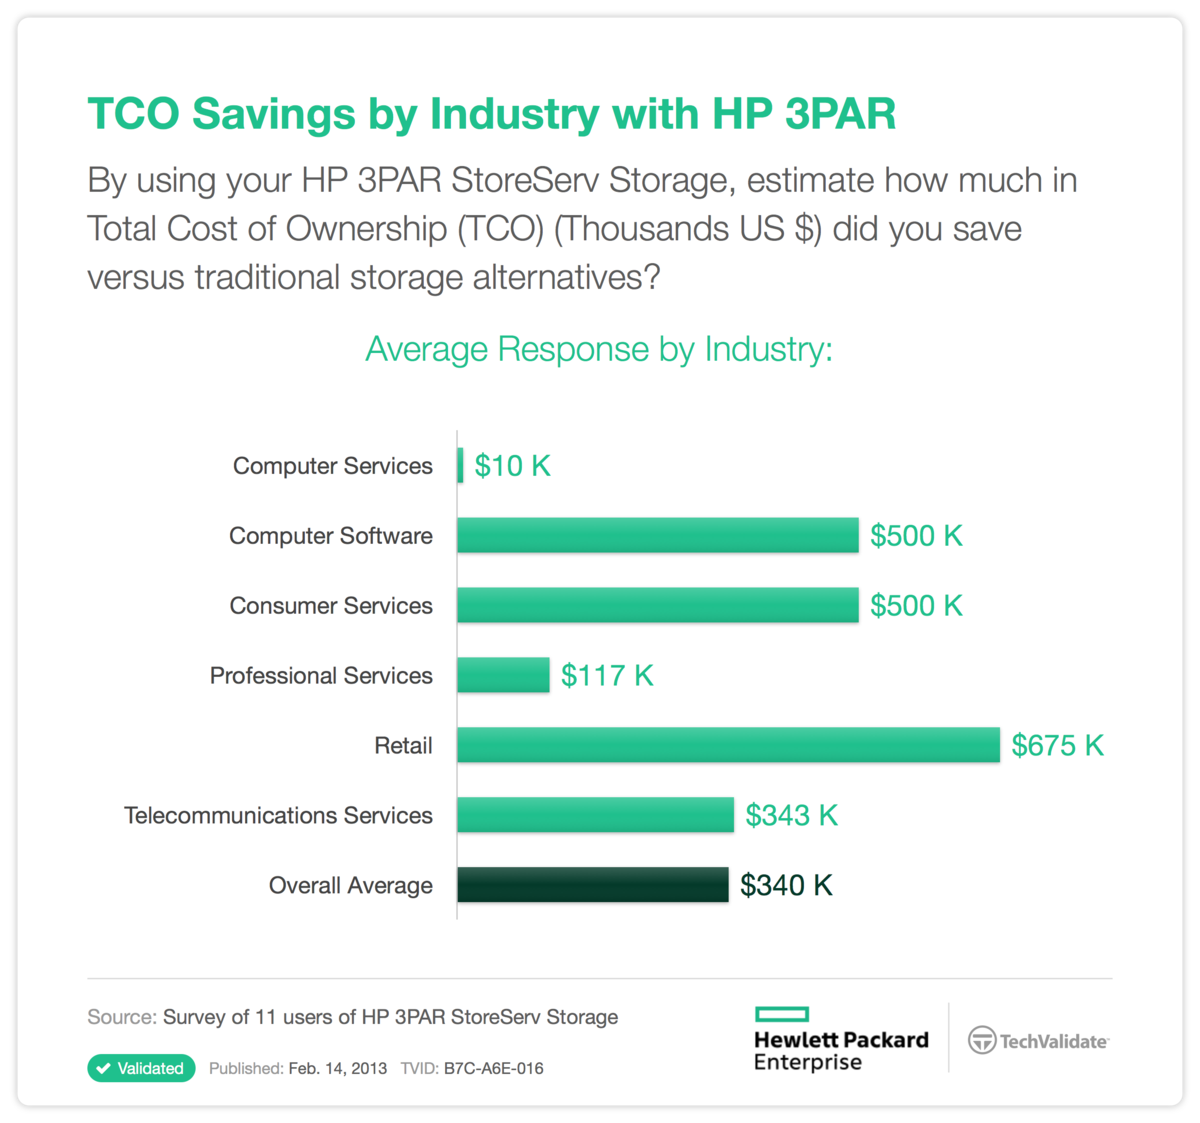 TCO Savings by Industry with HP 3PAR